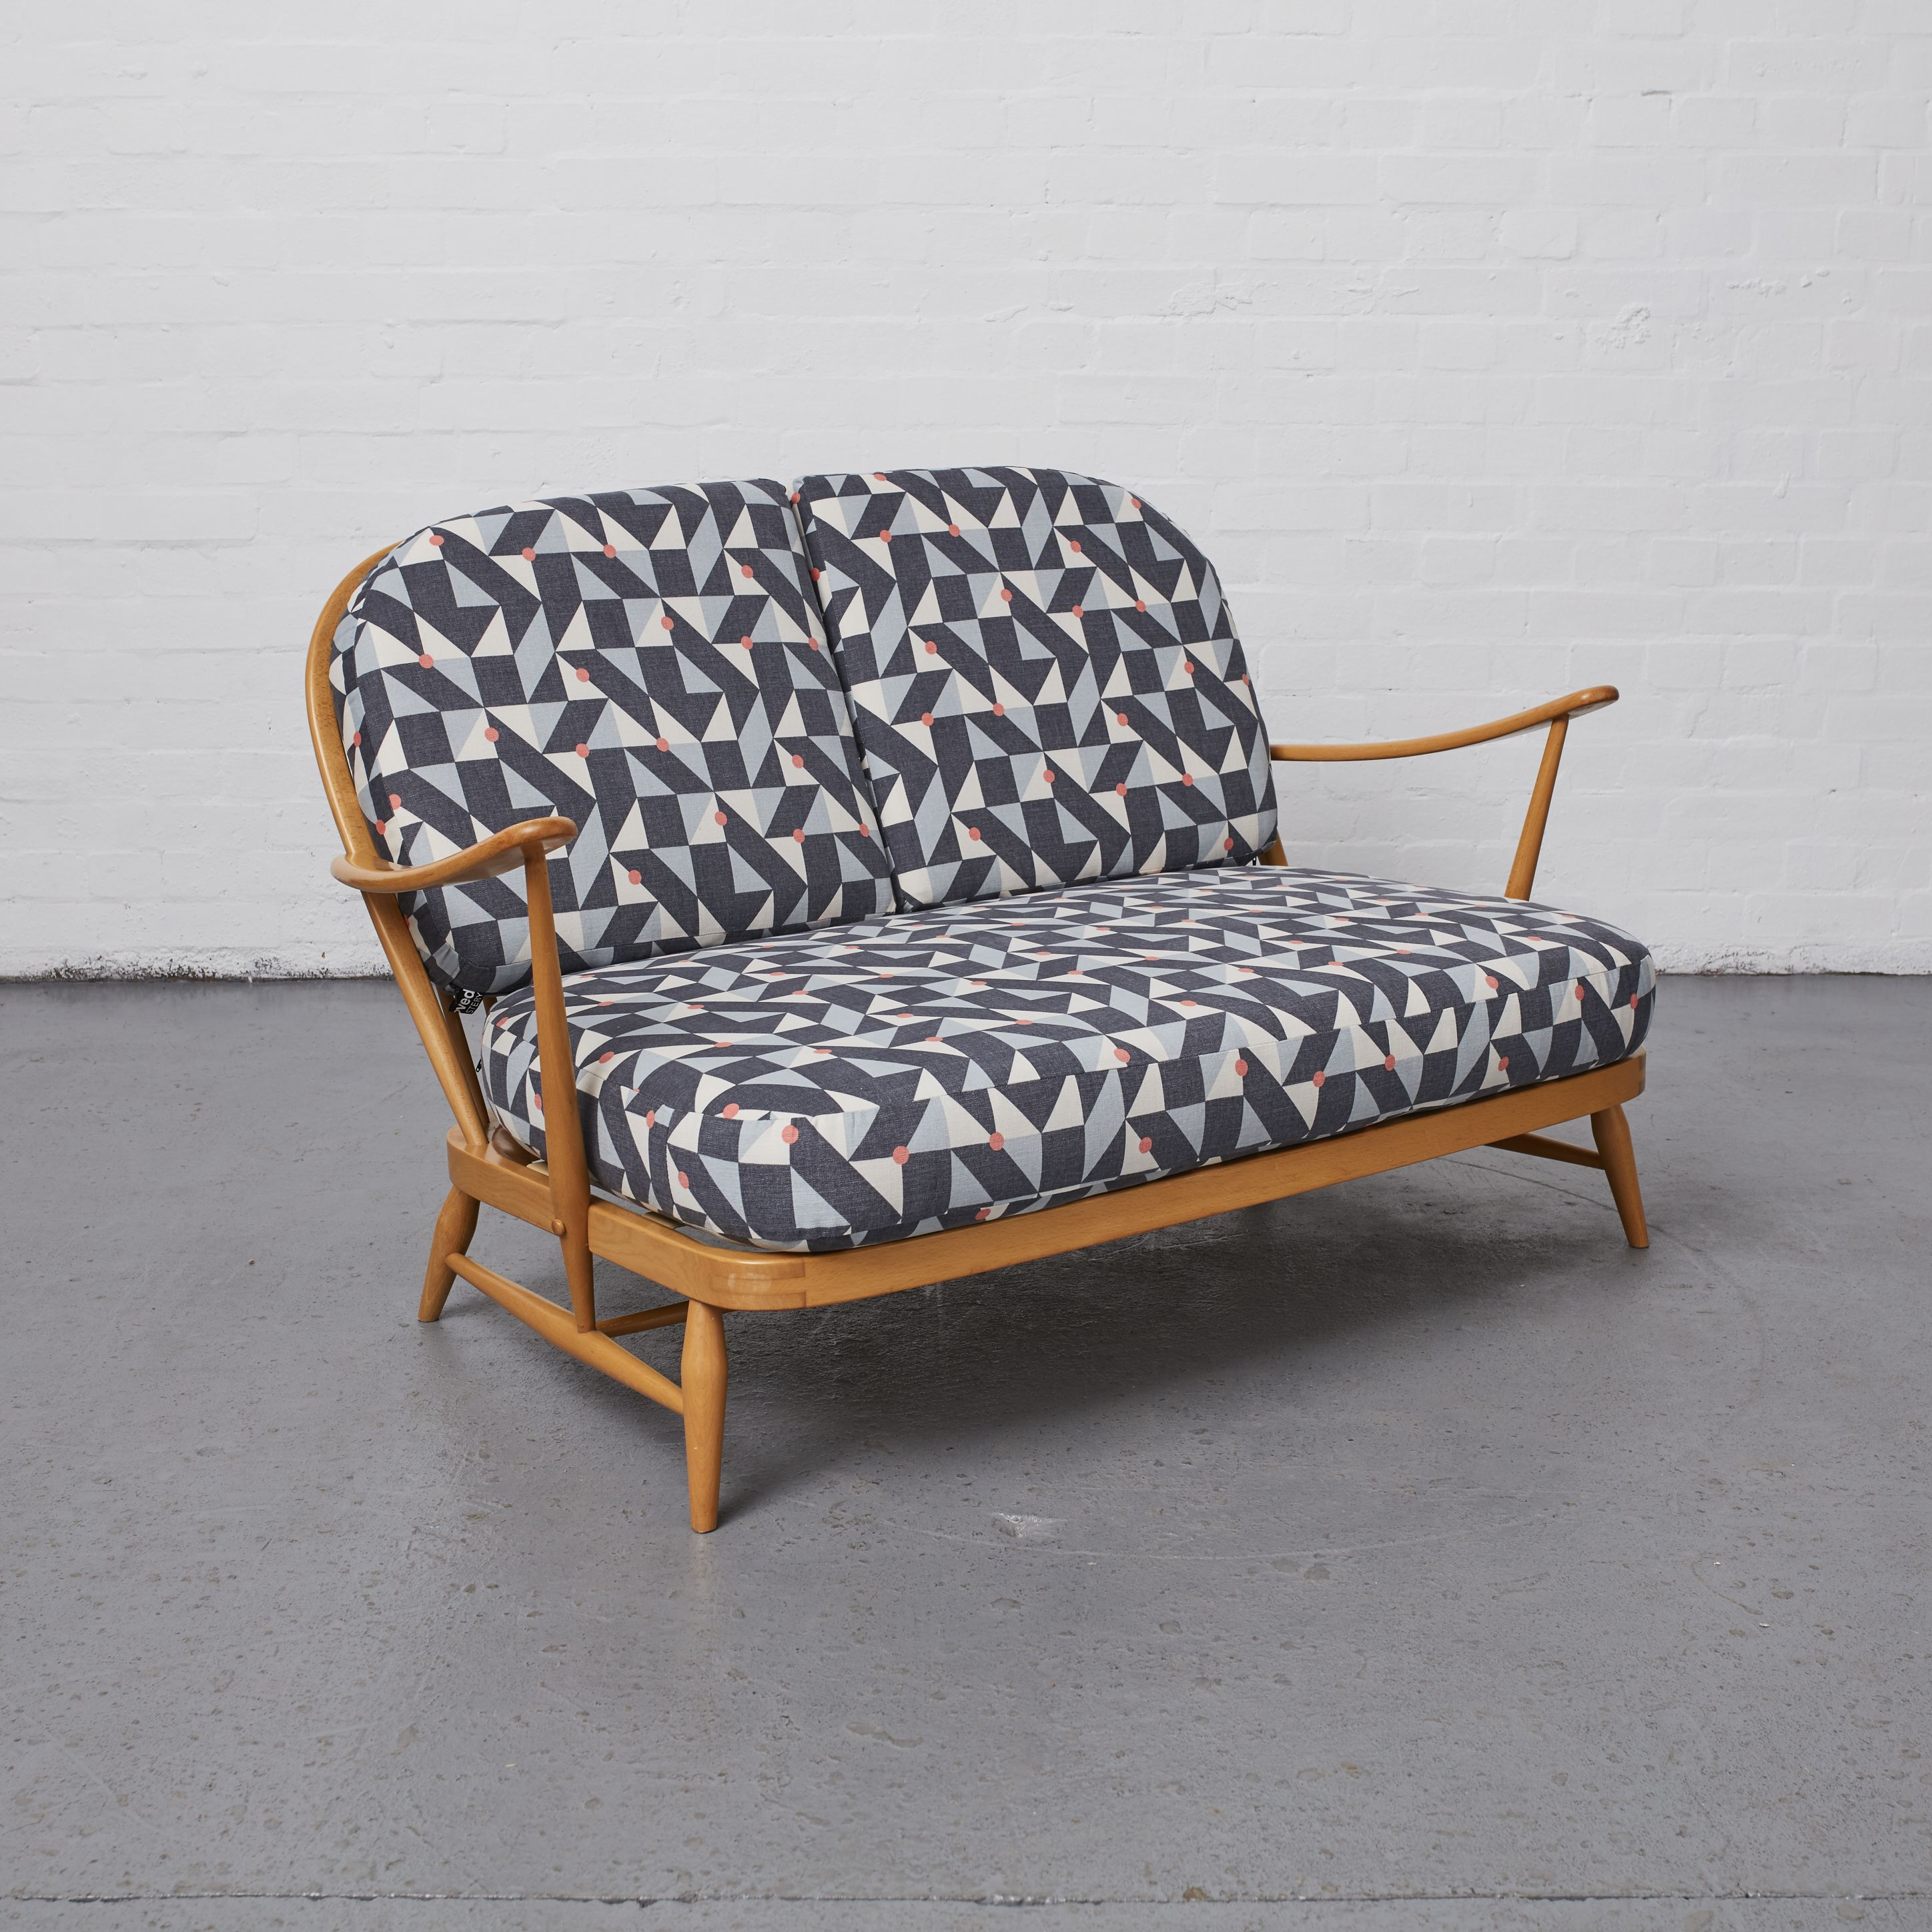 Ercol Reupholstery Ercol Cushions And Covers Reloved Upholstery Ercol Furniture Sofa Reupholstery Reupholstery